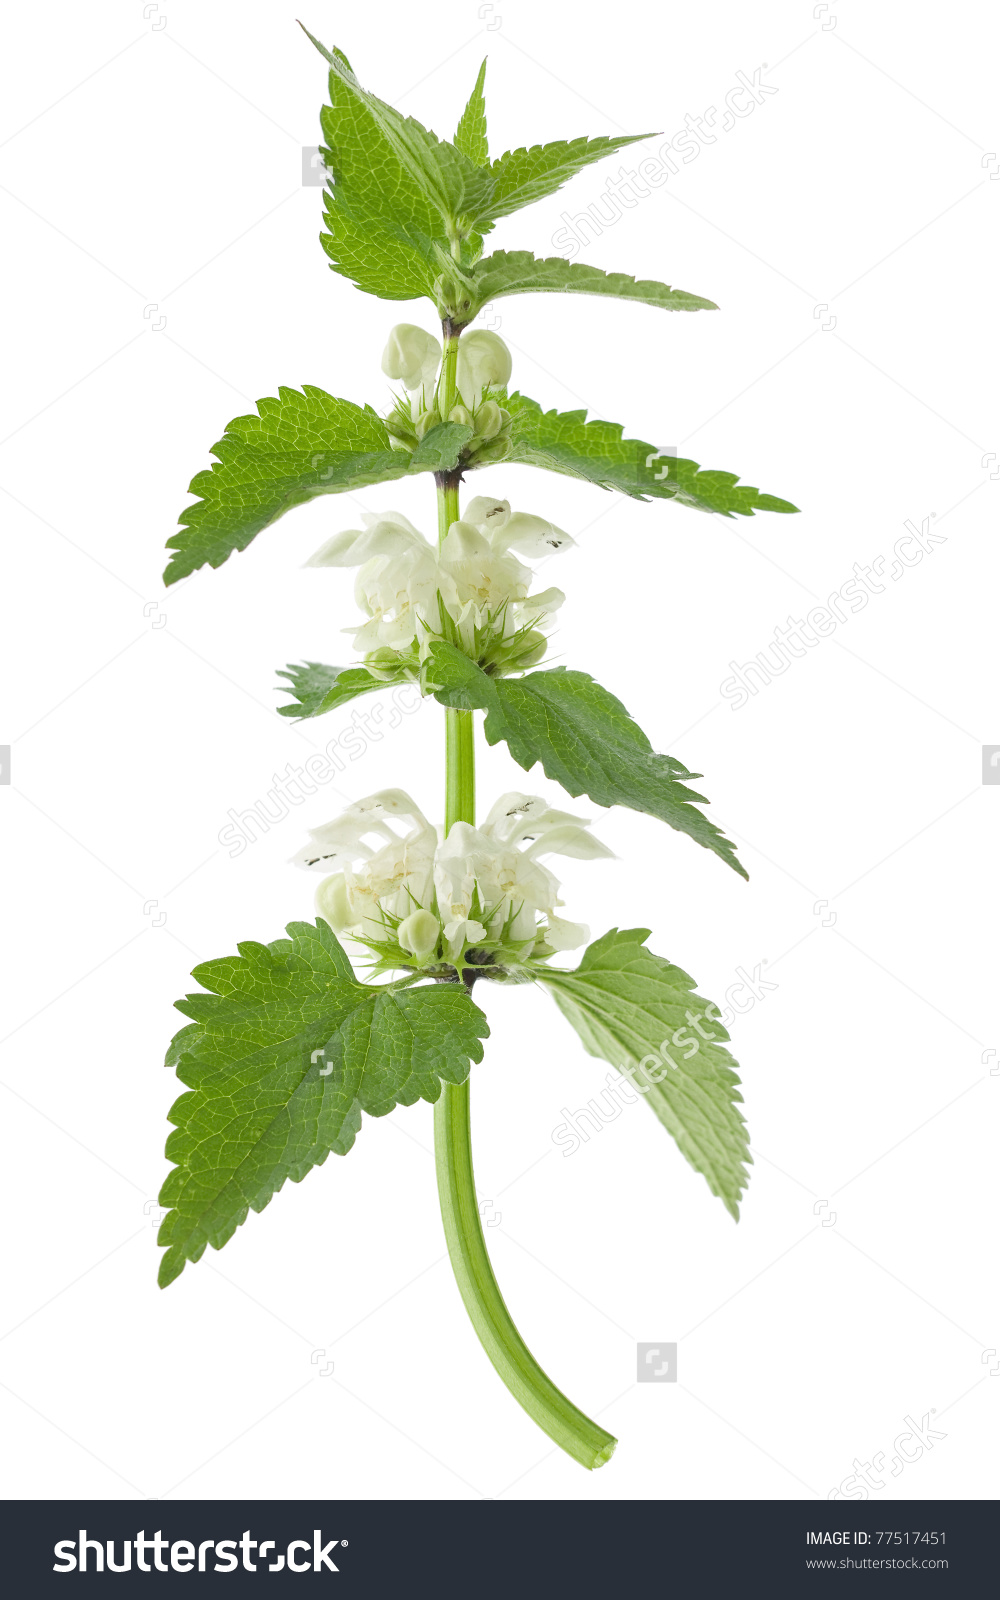 White Deadnettle Lamium Album On White Stock Photo 77517451.